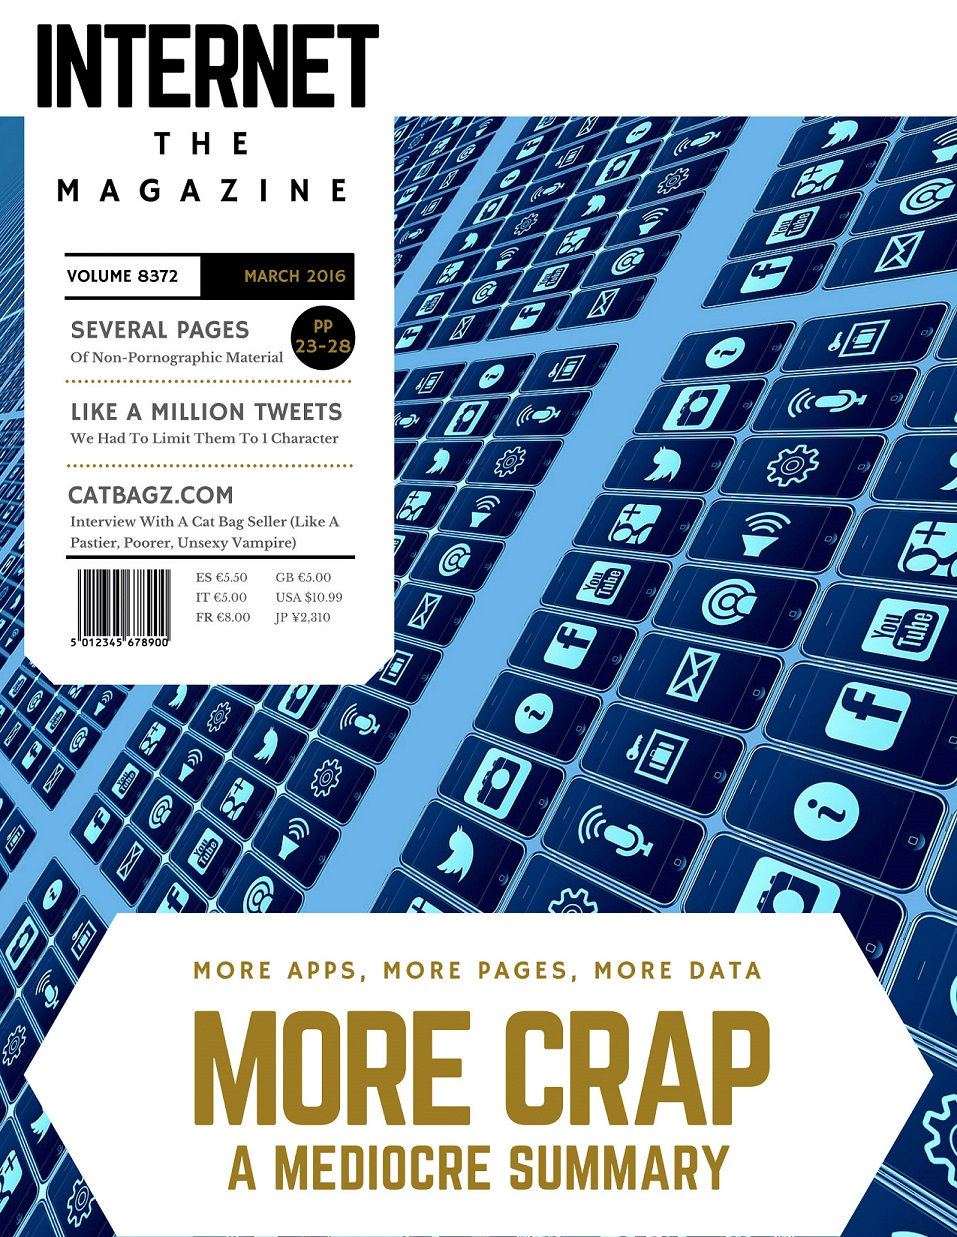 Front Page of Internet - The Magazine where CatBagz.com is Featured.